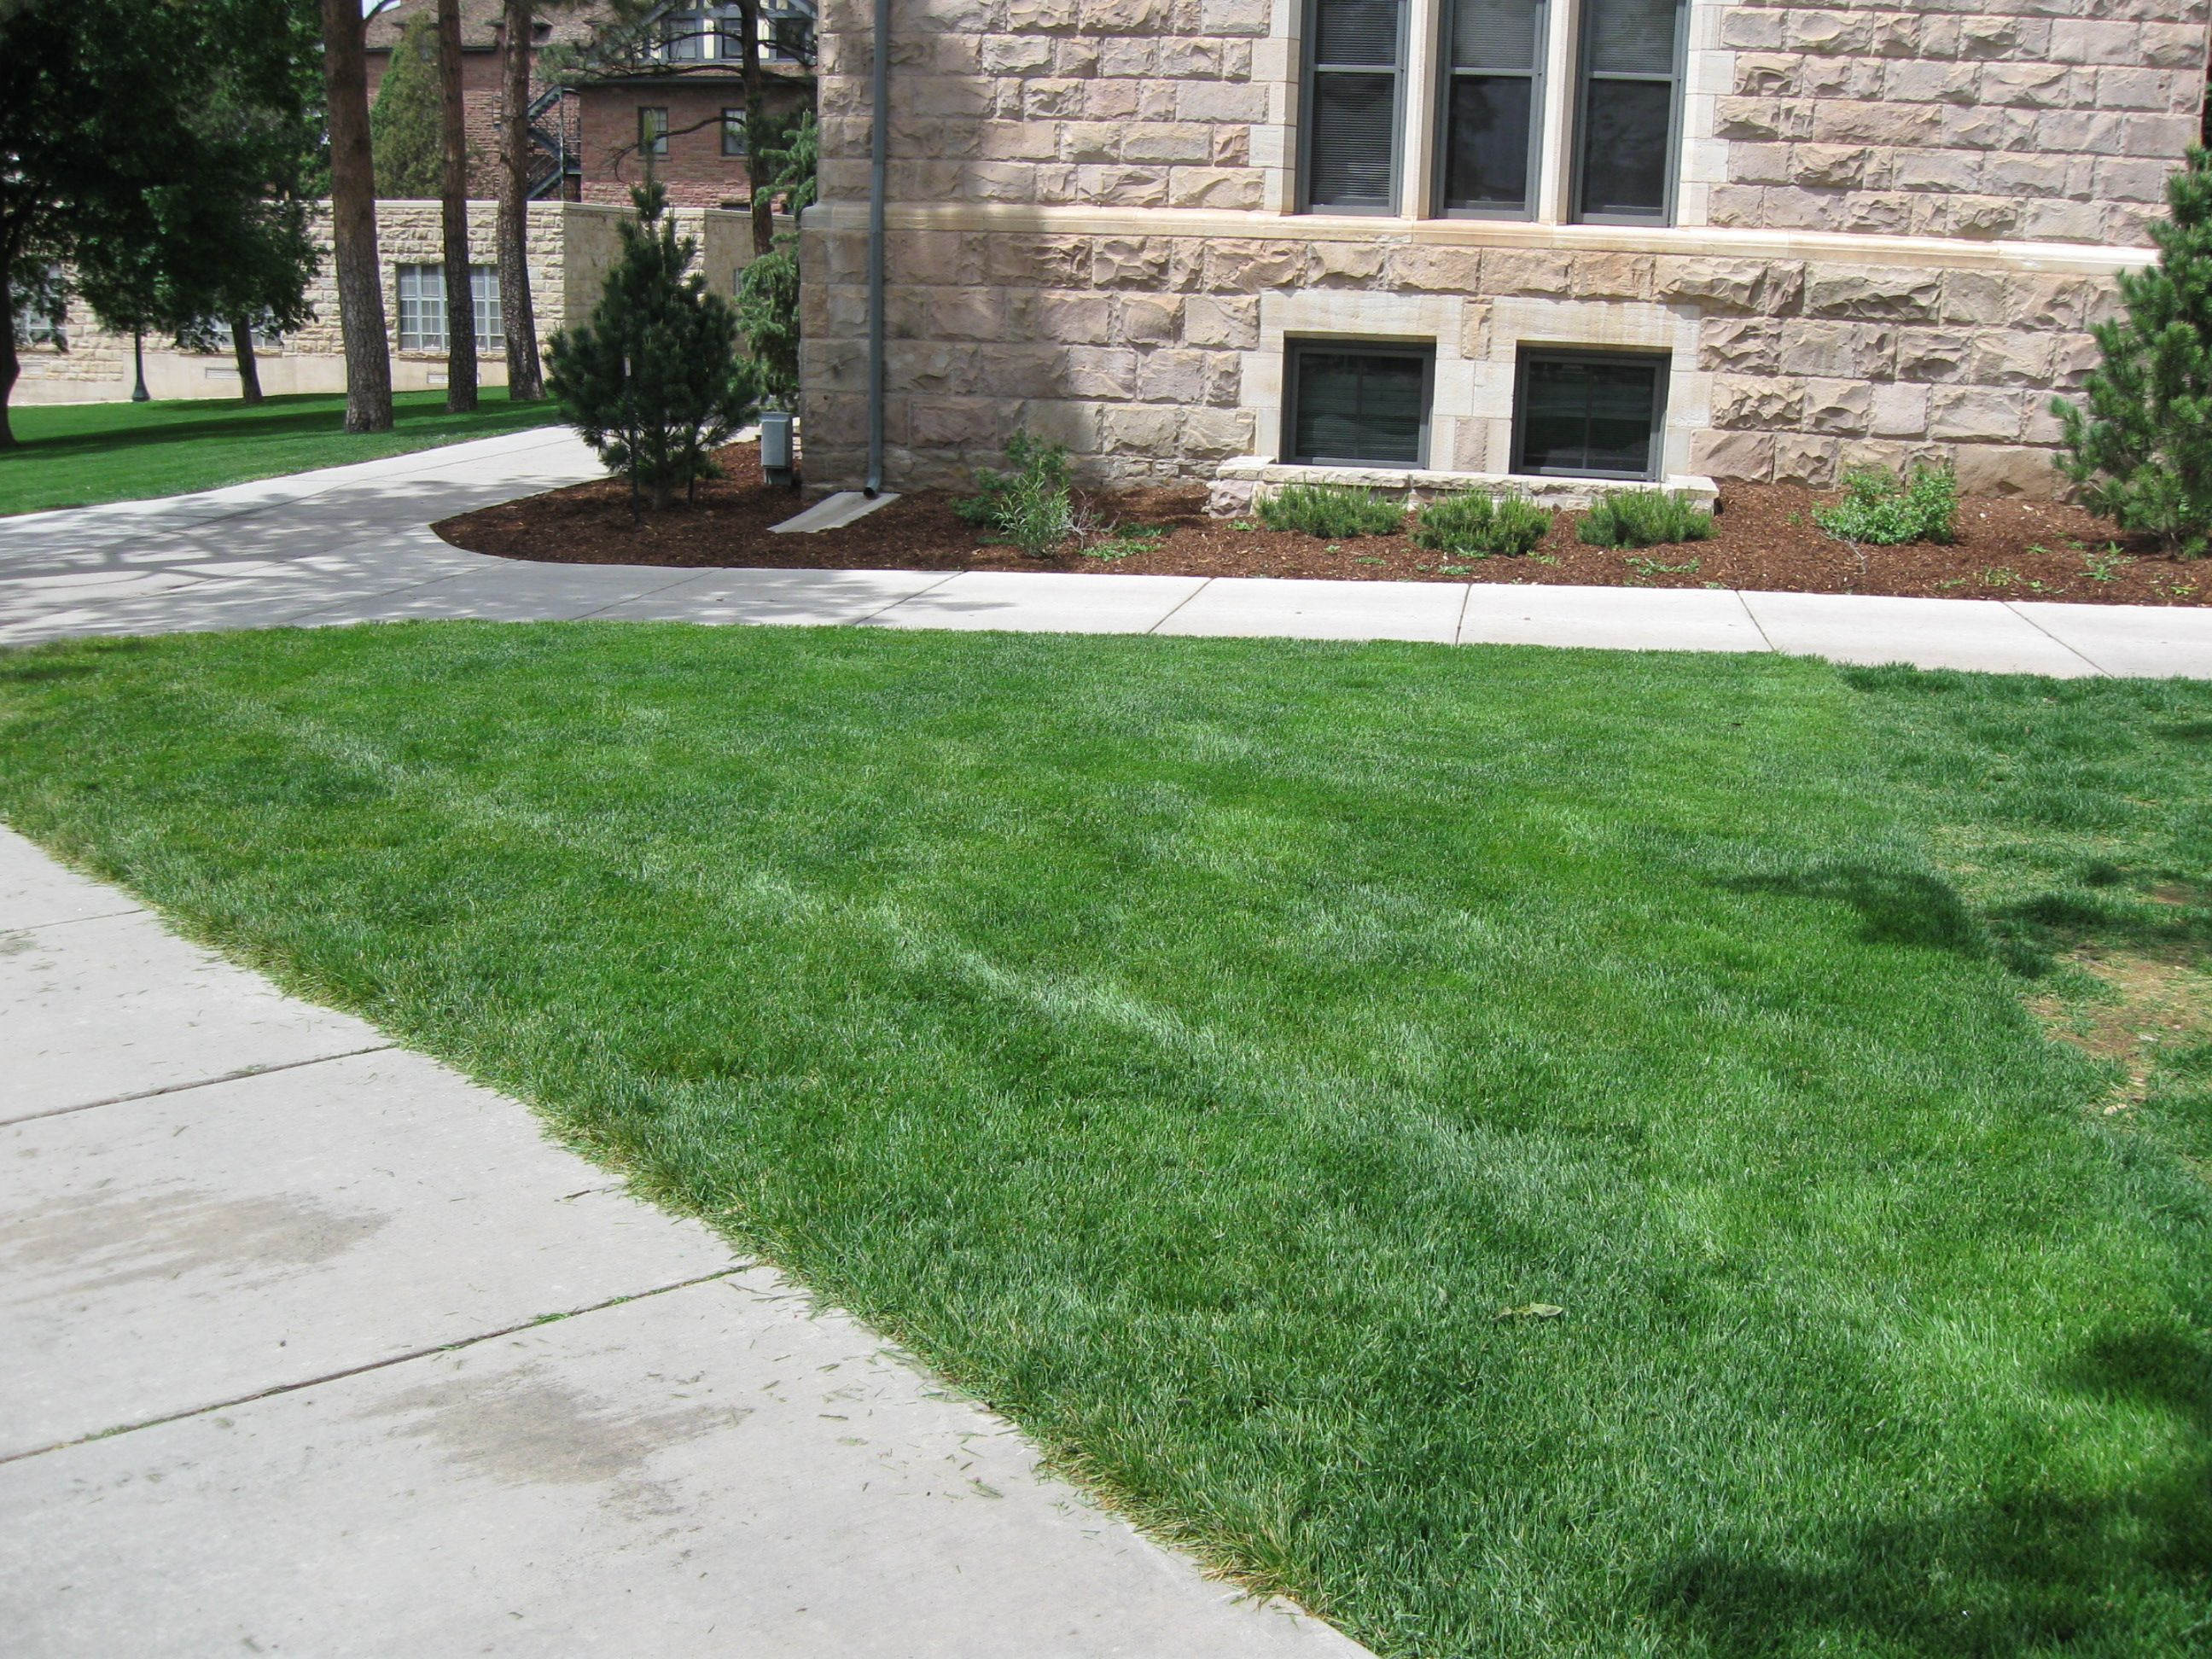 Grasscrete - Colorado College - 02